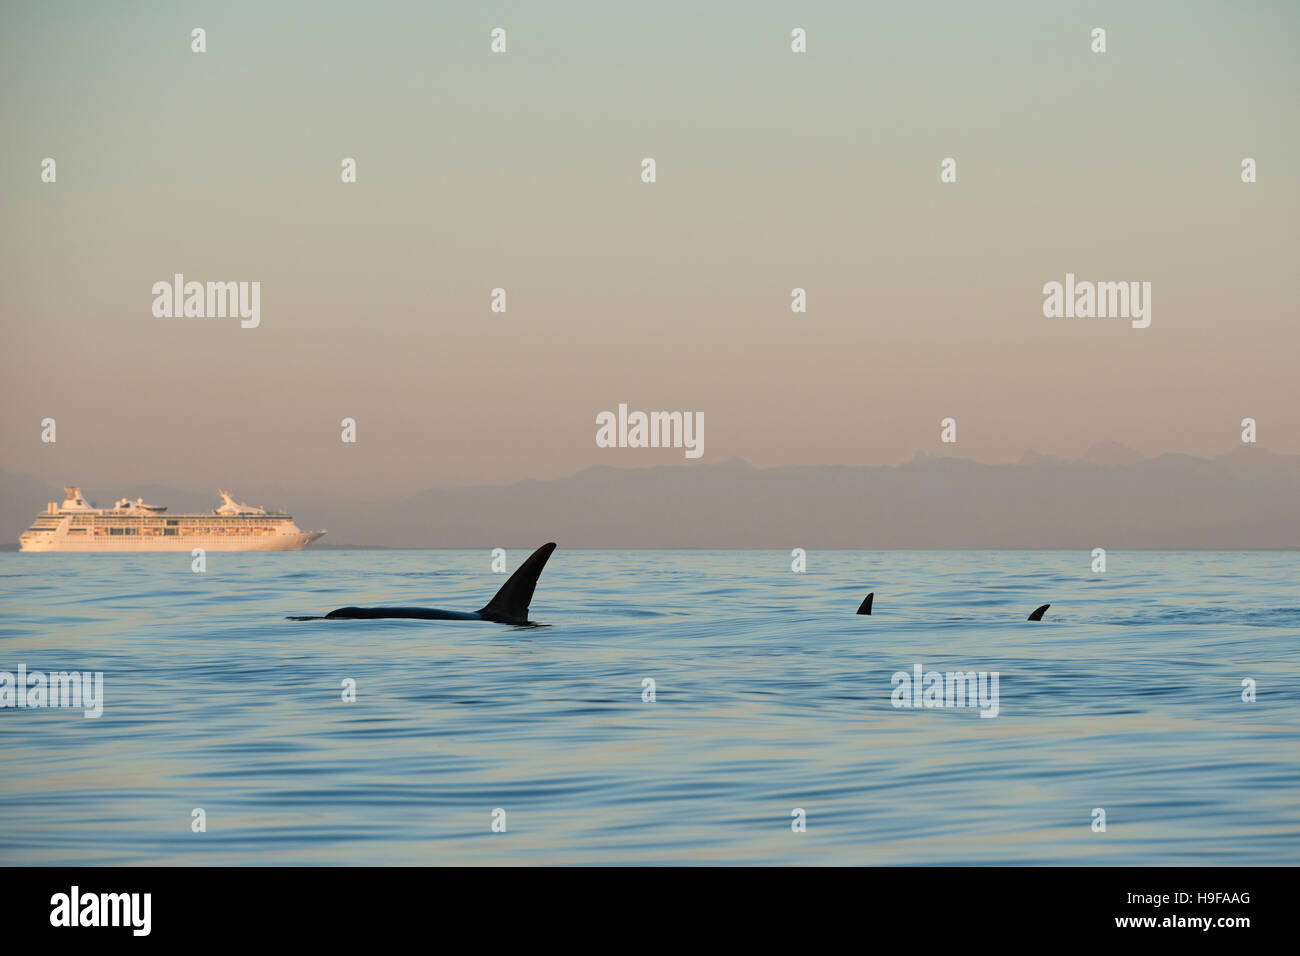 transient orcas or killer whales, Orcinus orca, swim past a cruise ship in the Strait of George, off Vancouver Island, - Stock Image